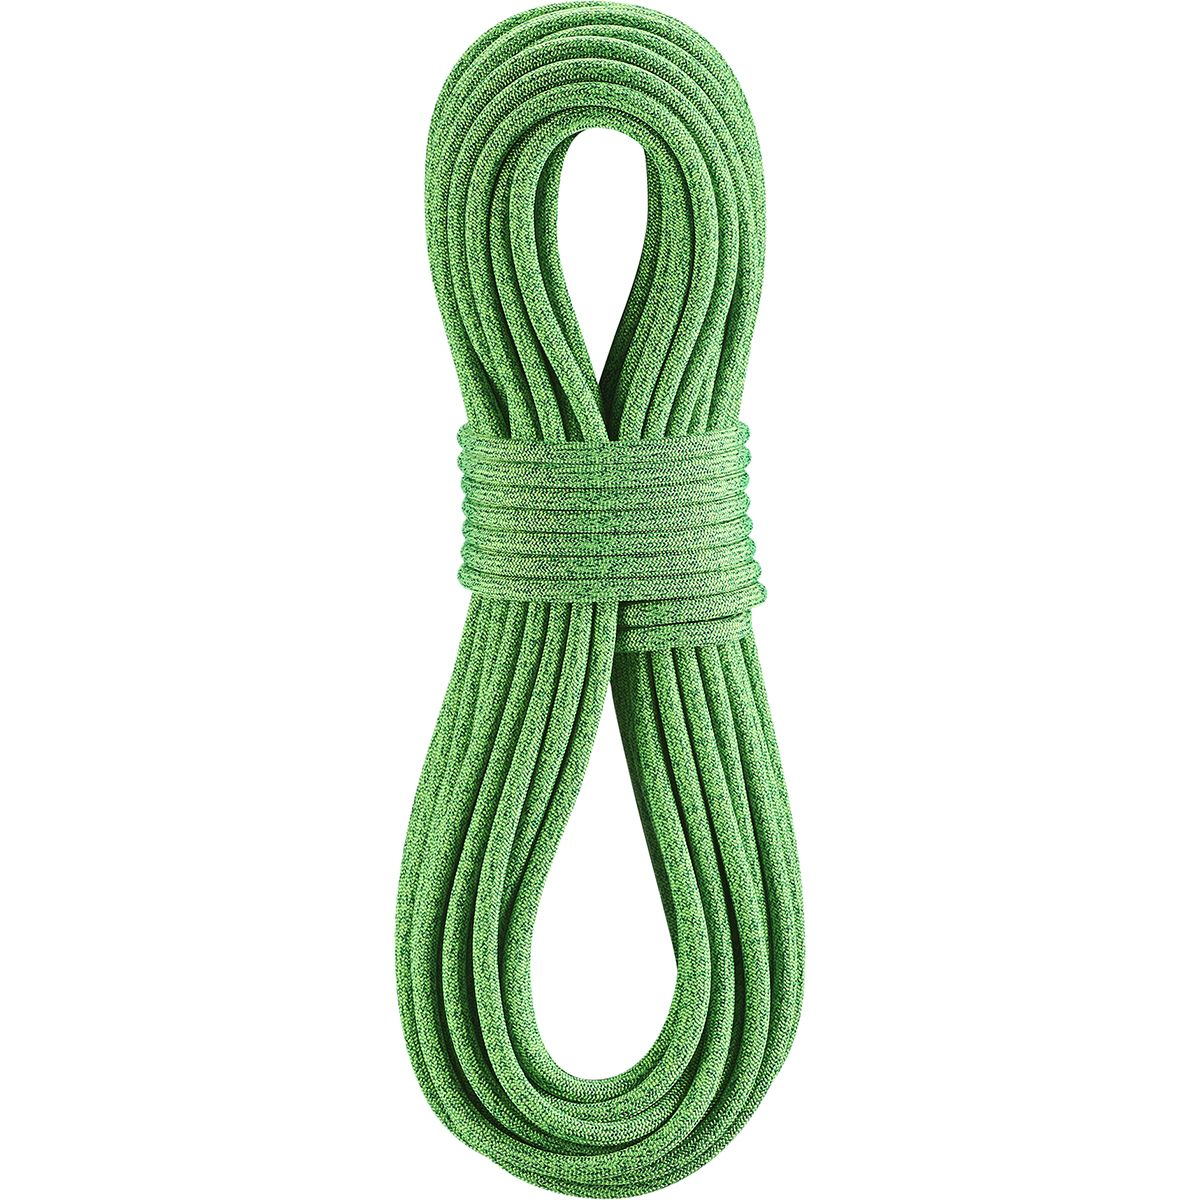 Edelrid Boa Gym 9.8mm